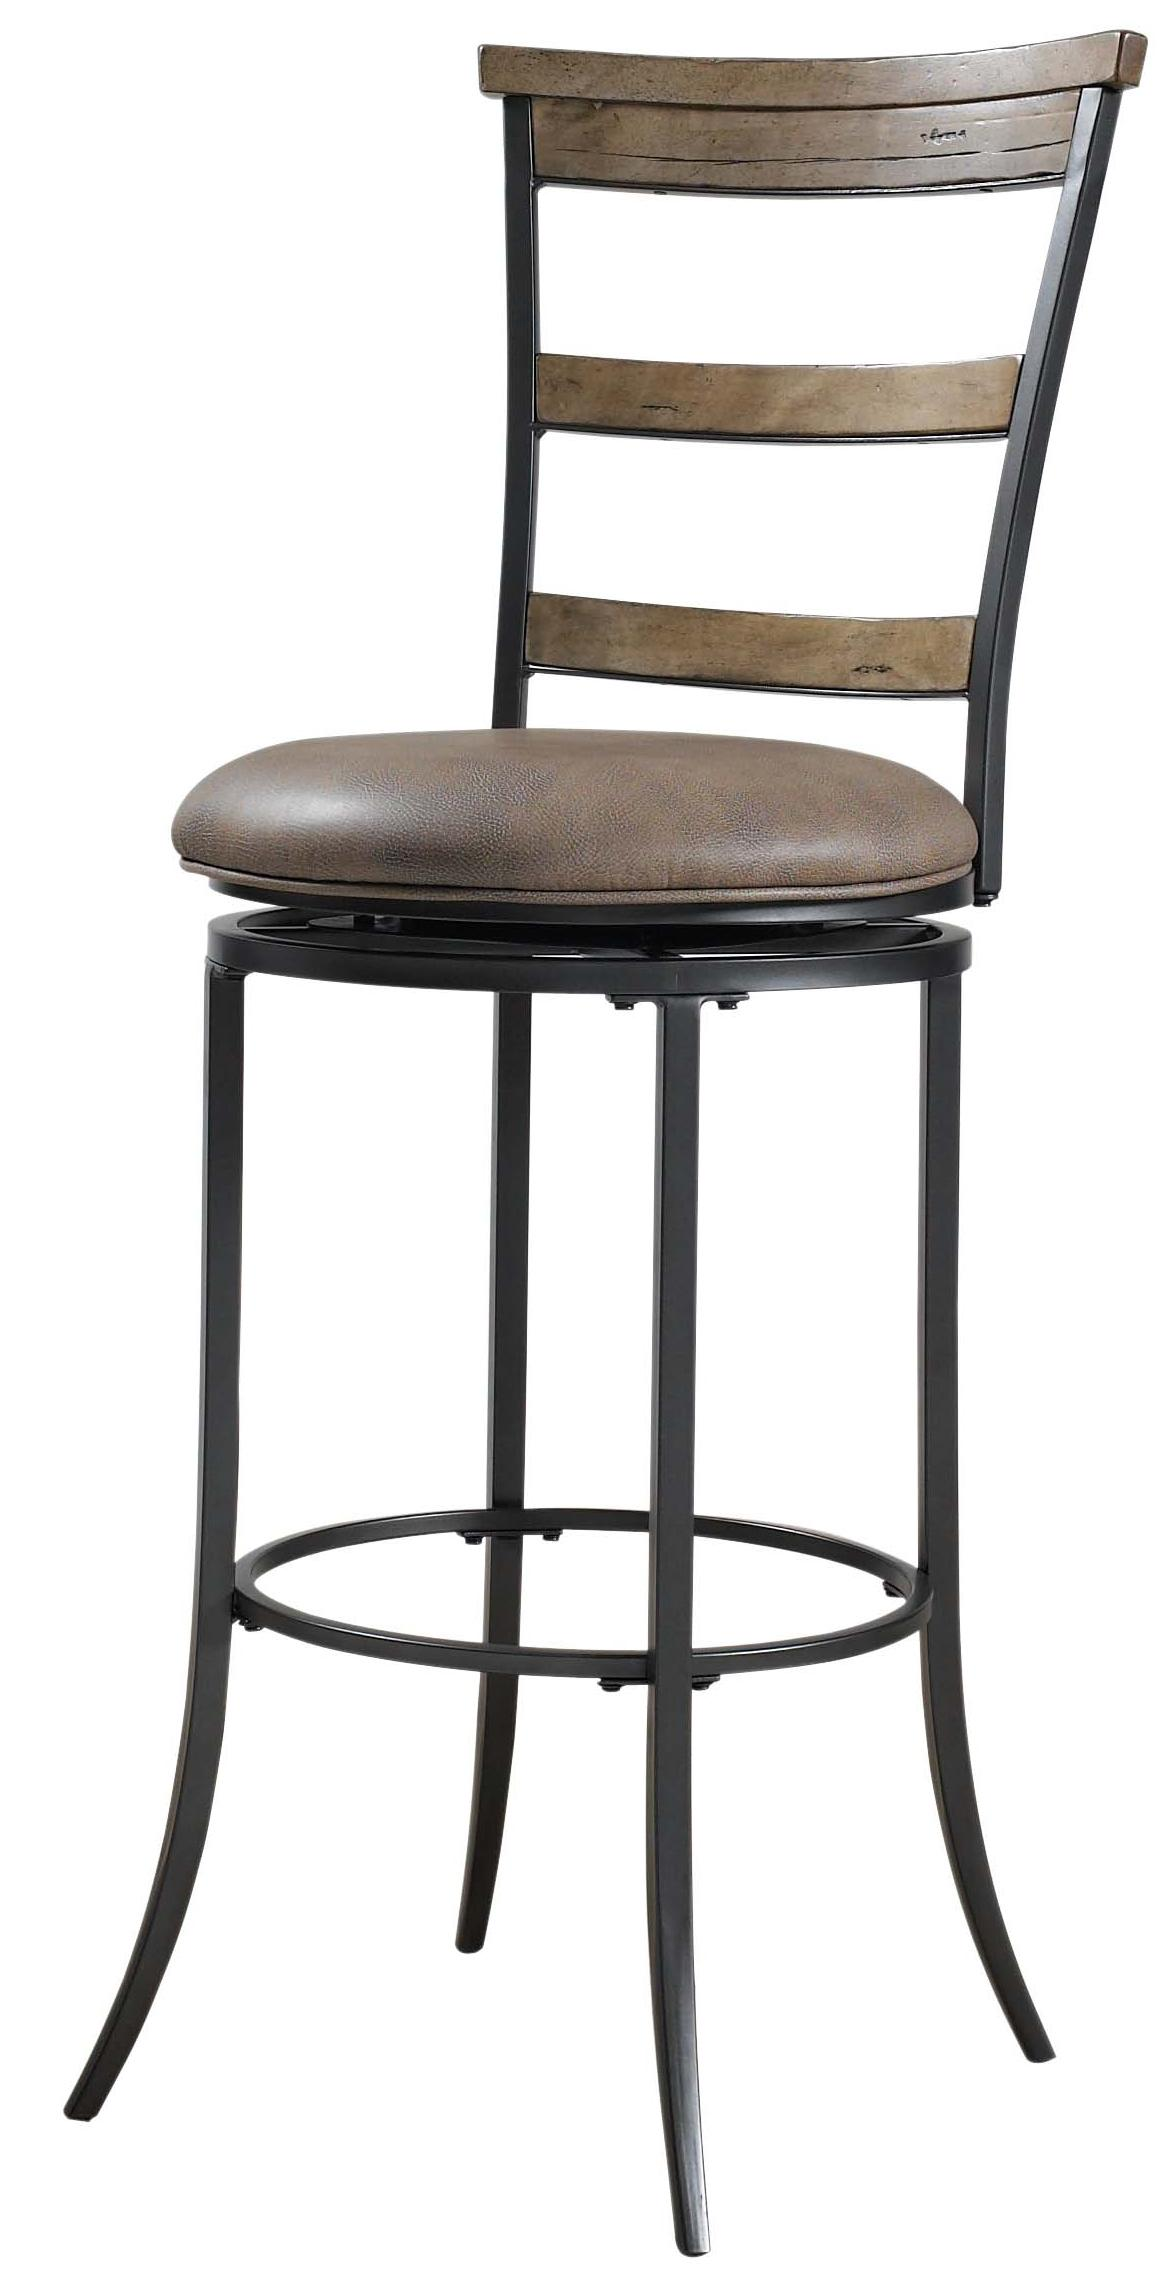 Wonderful image of Metal Stools Charleston Swivel Ladder Back Counter Stool by Hillsdale  with #73614C color and 1168x2276 pixels